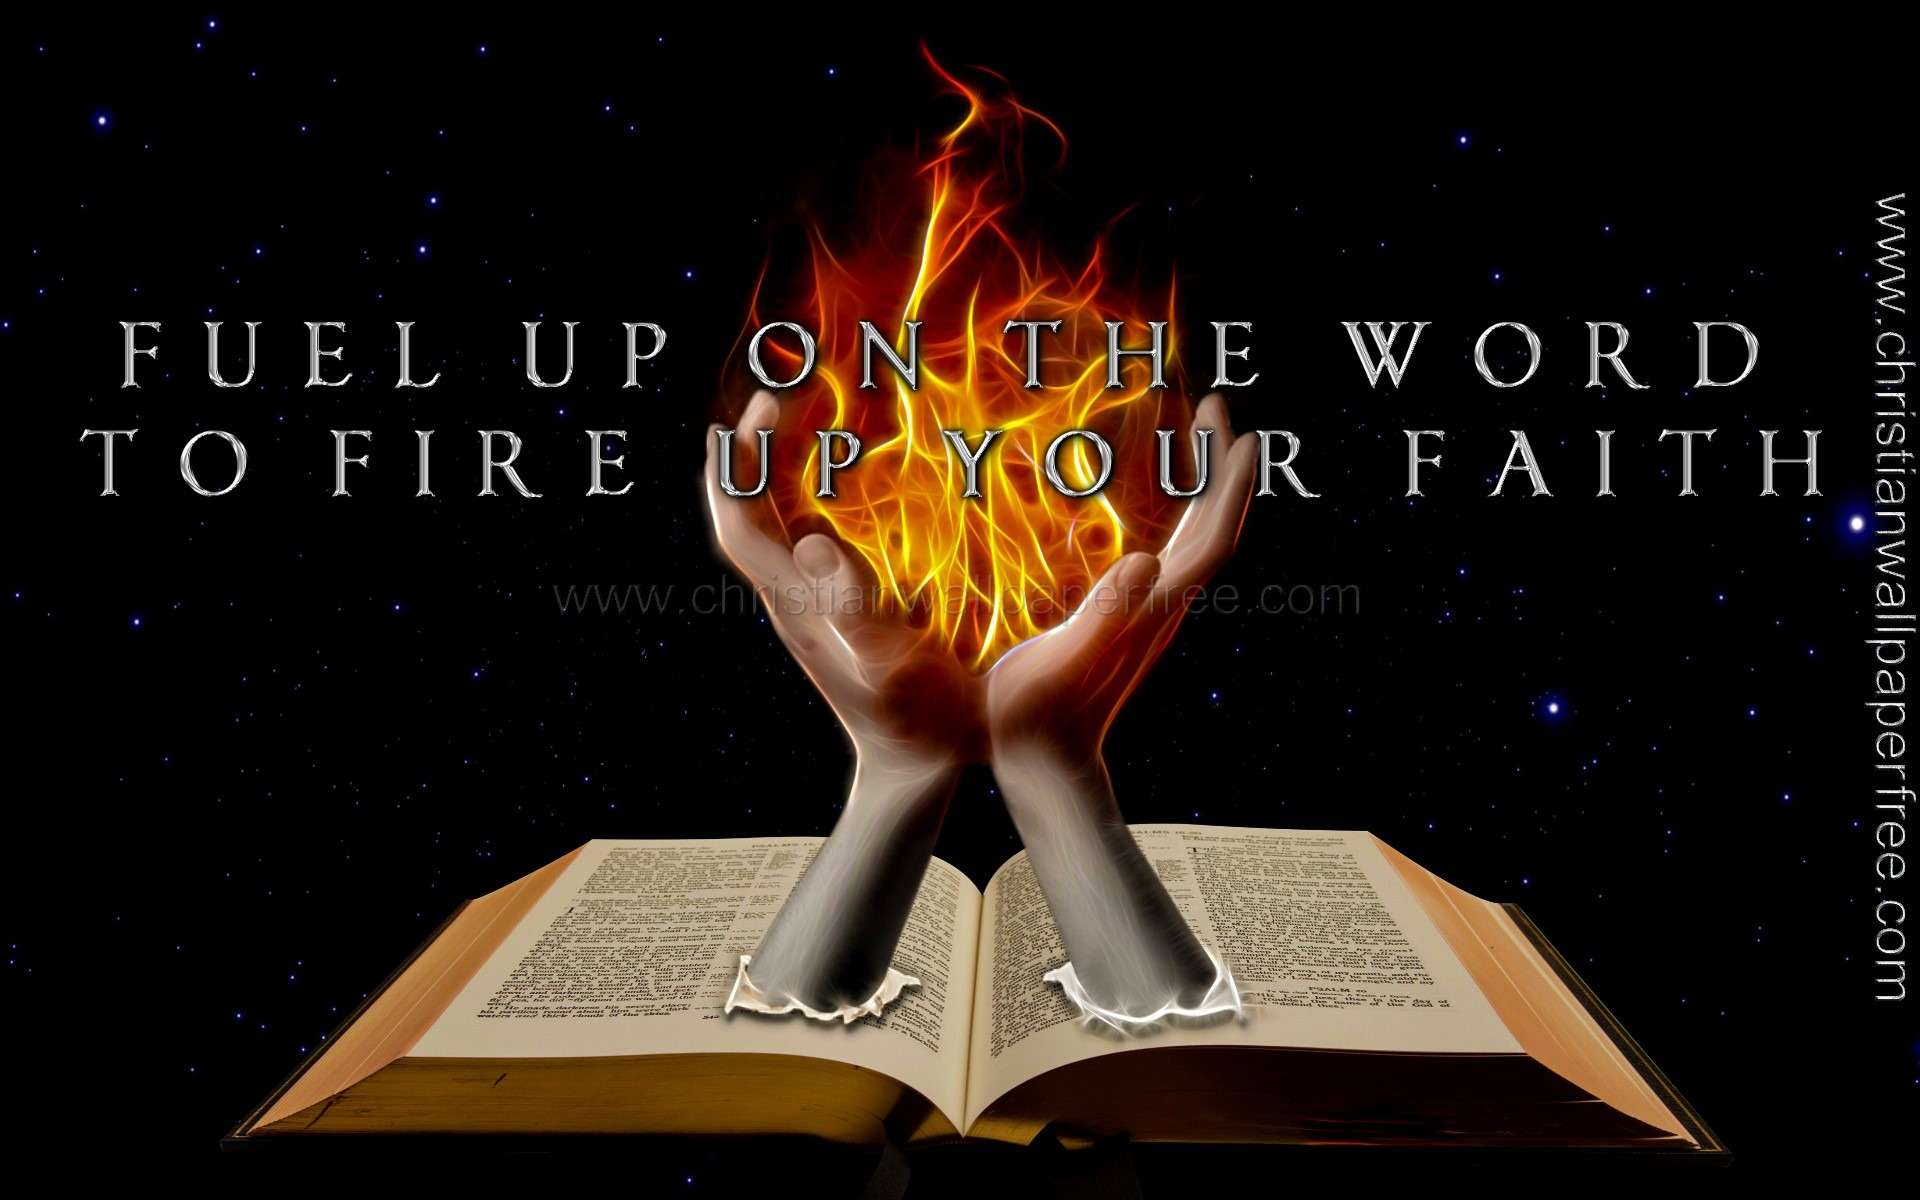 Fuel Up on the Word to Fire Up Your Faith